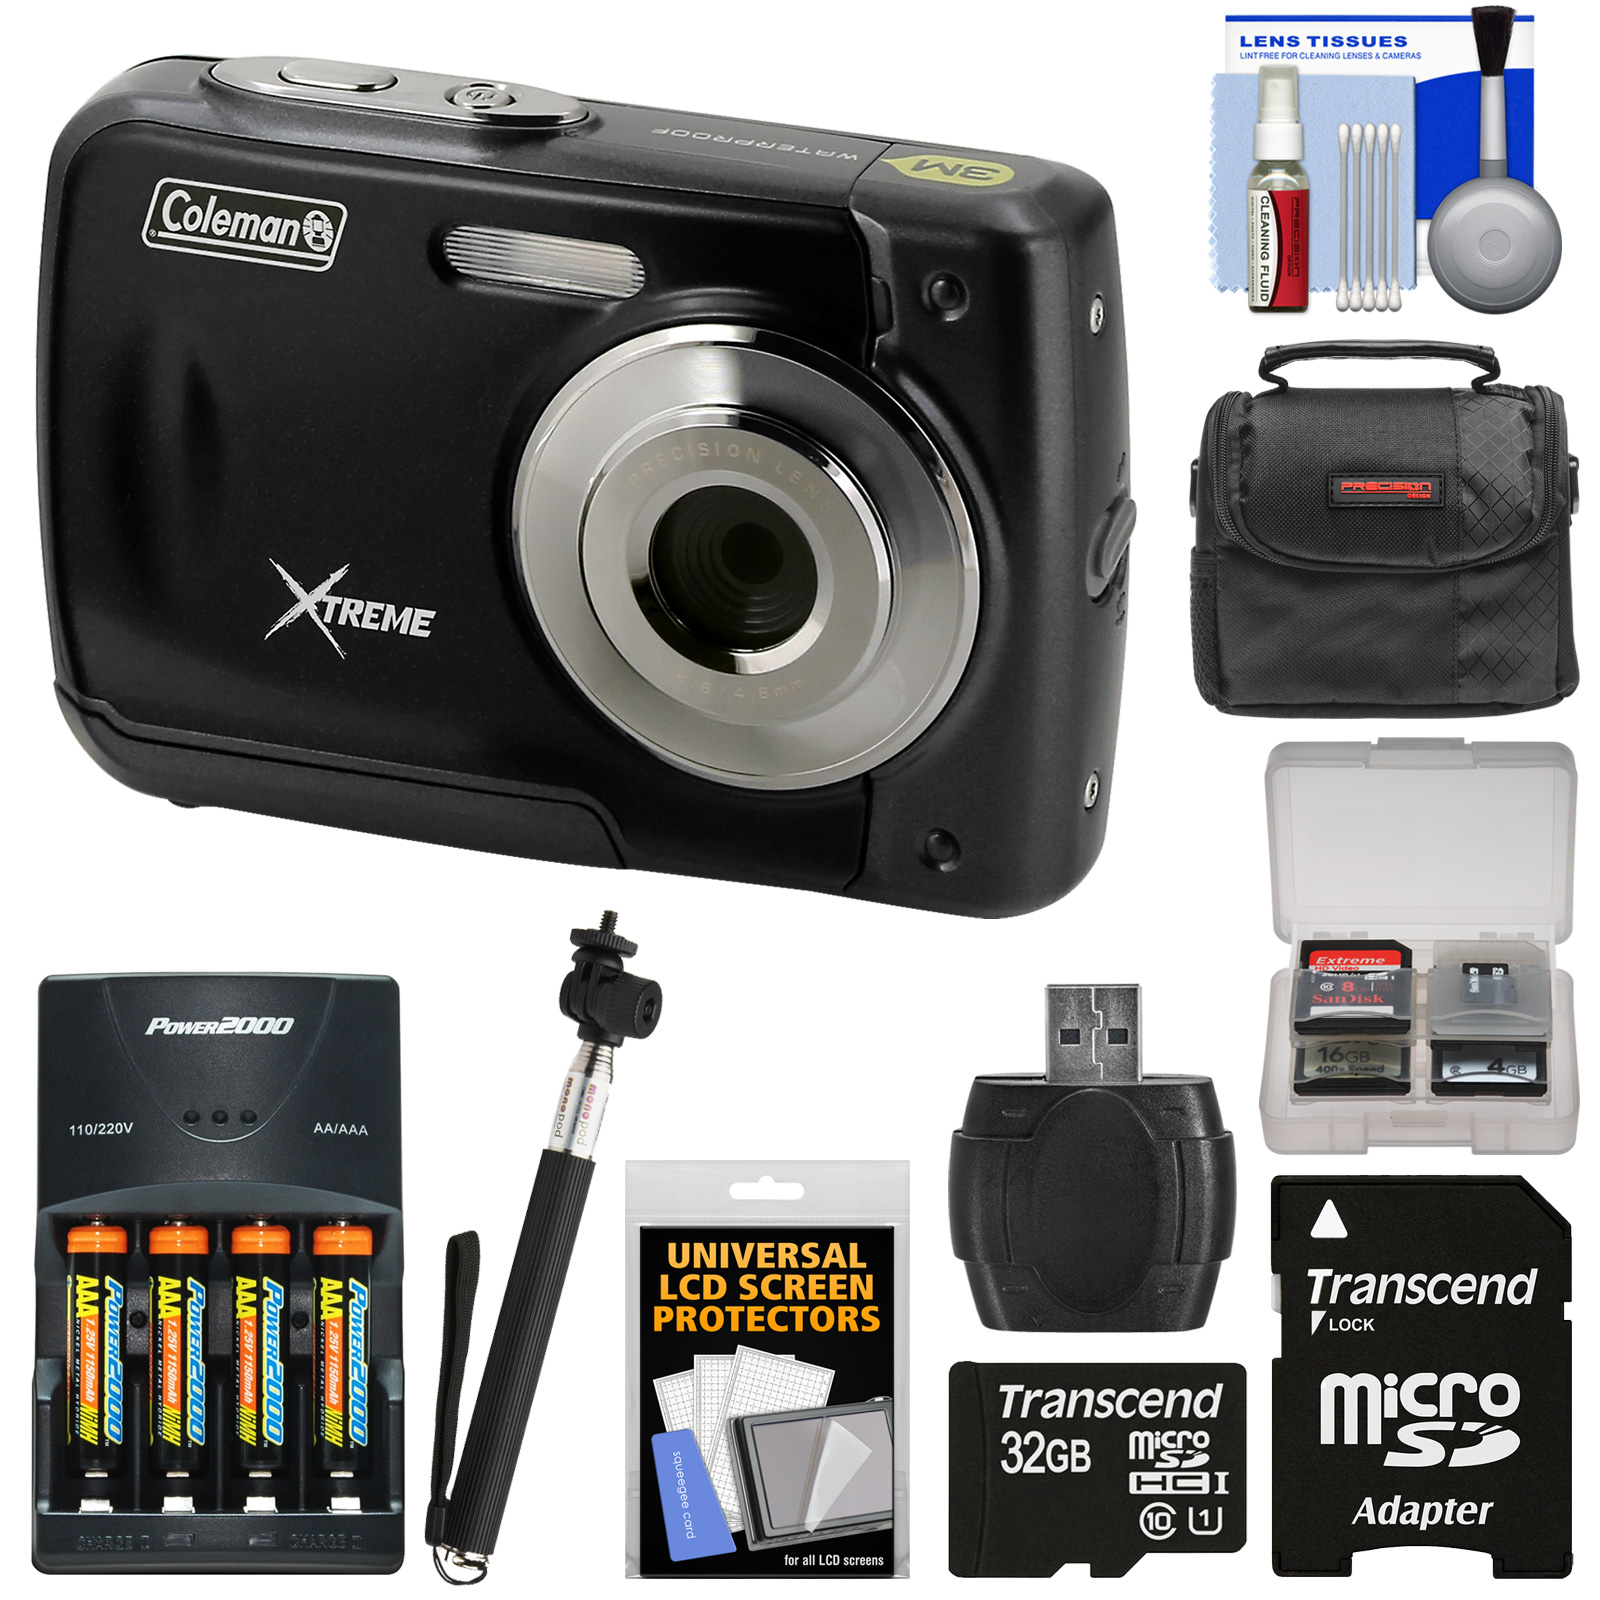 Coleman Xtreme C20WP Shock & Waterproof HD Digital Camera...